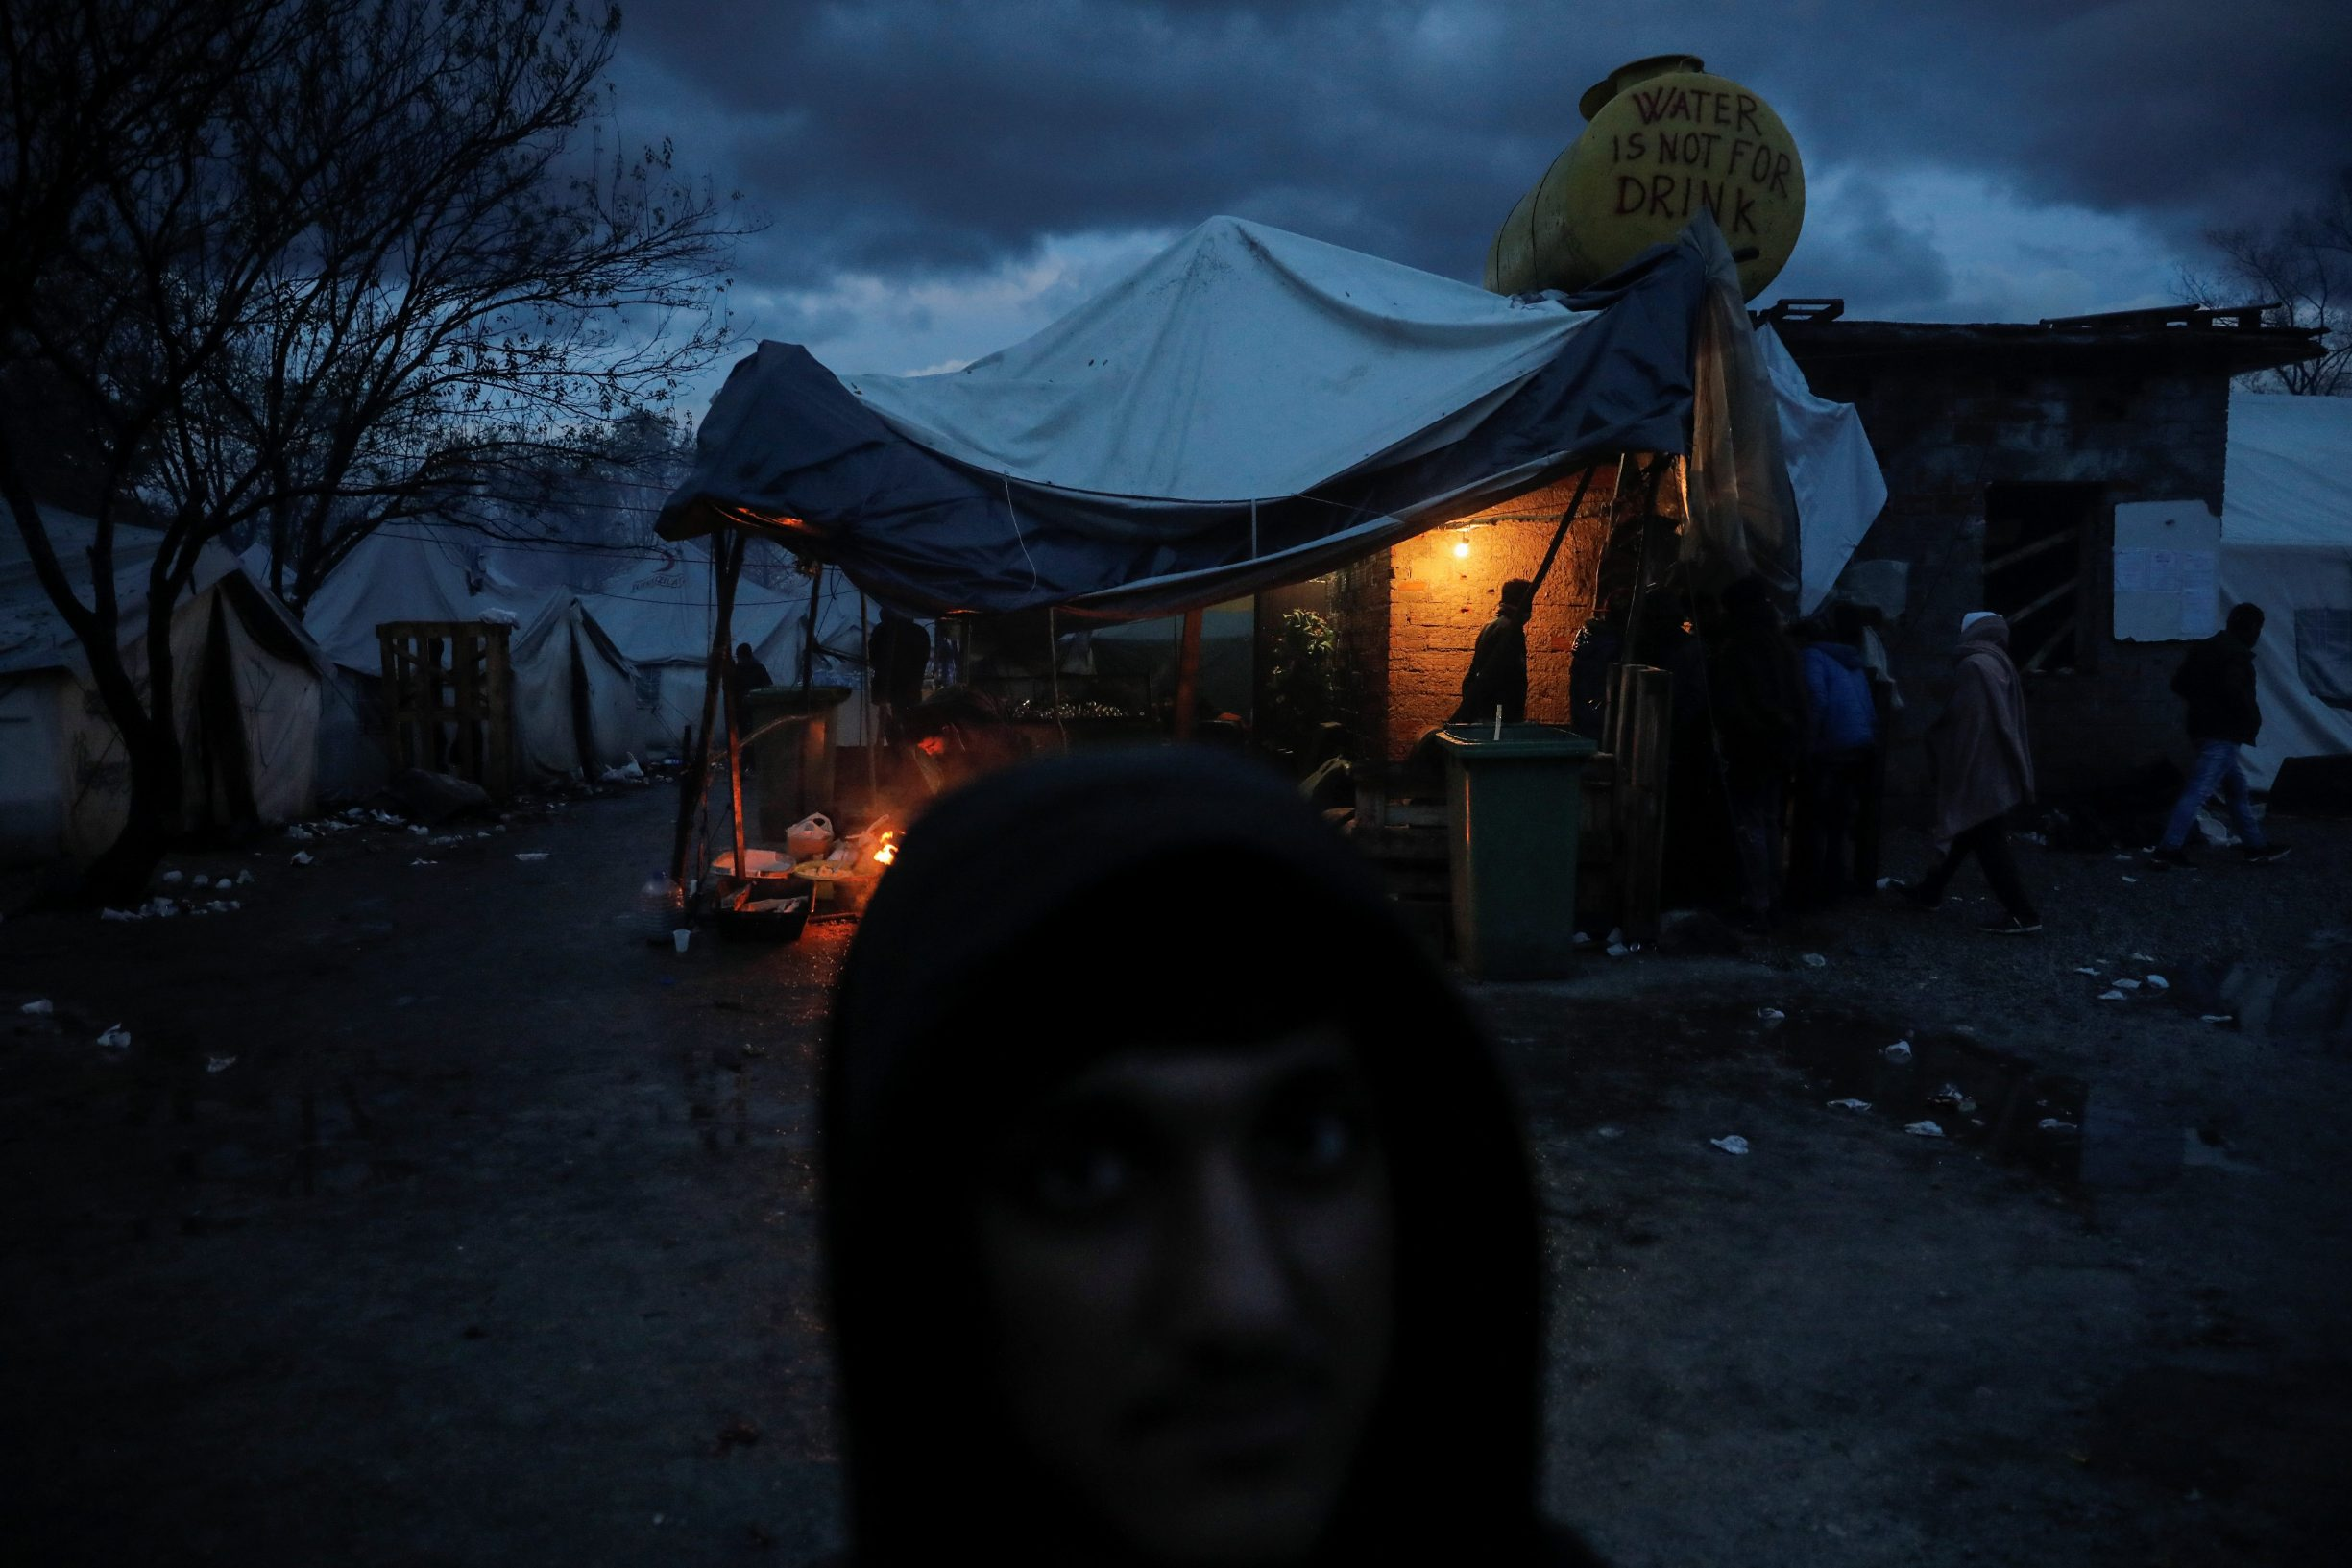 A migrant stands in front of the main tent inside Vucjak camp near Bihac, Bosnia and Herzegovina, November 13, 2019. Picture taken November 13, 2019. REUTERS/Marko Djurica